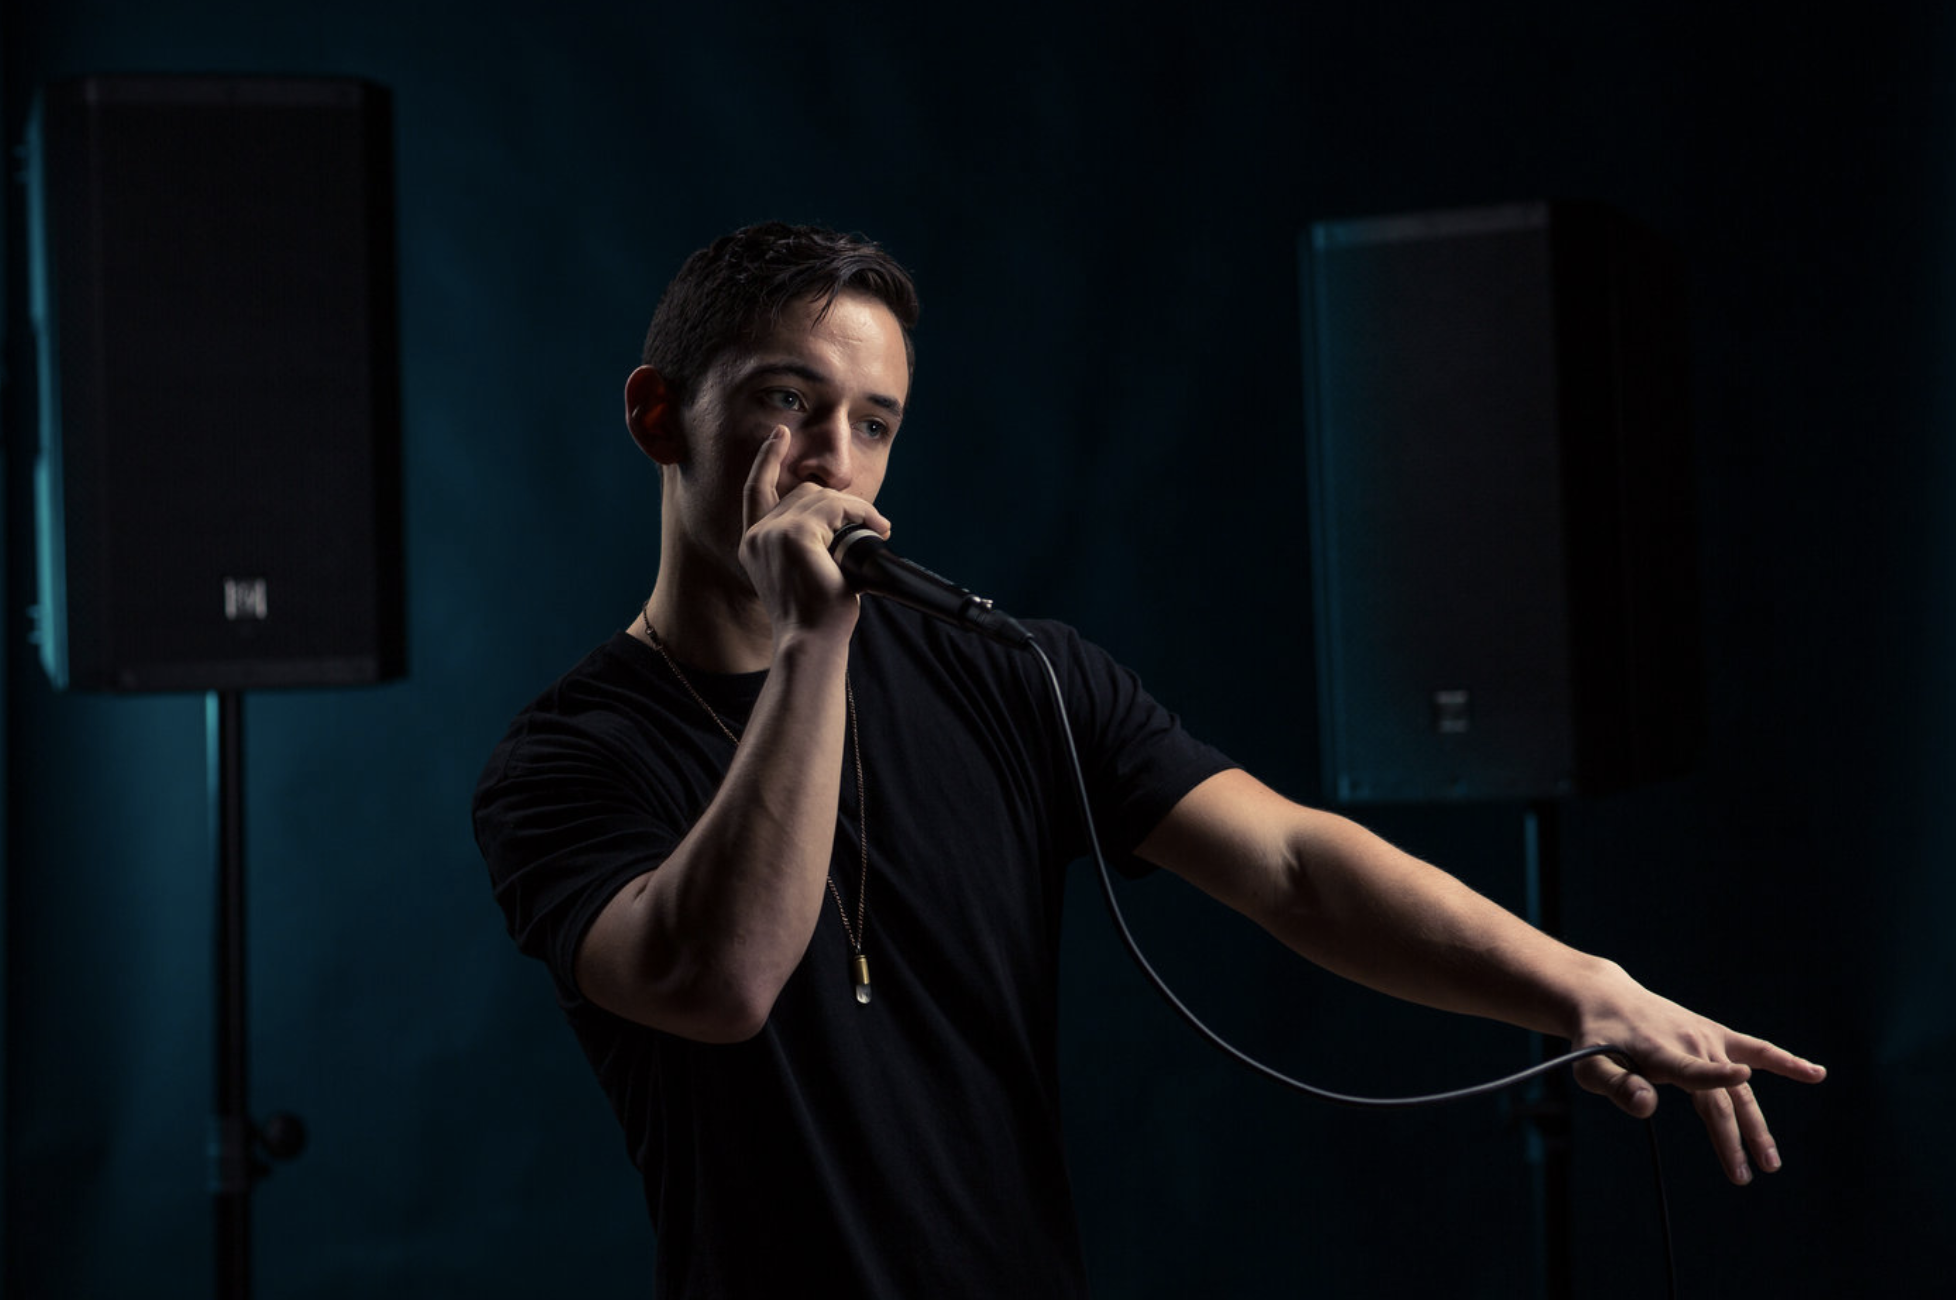 a beat boxer dances and beats with a microphone in his hand and speakers in the background